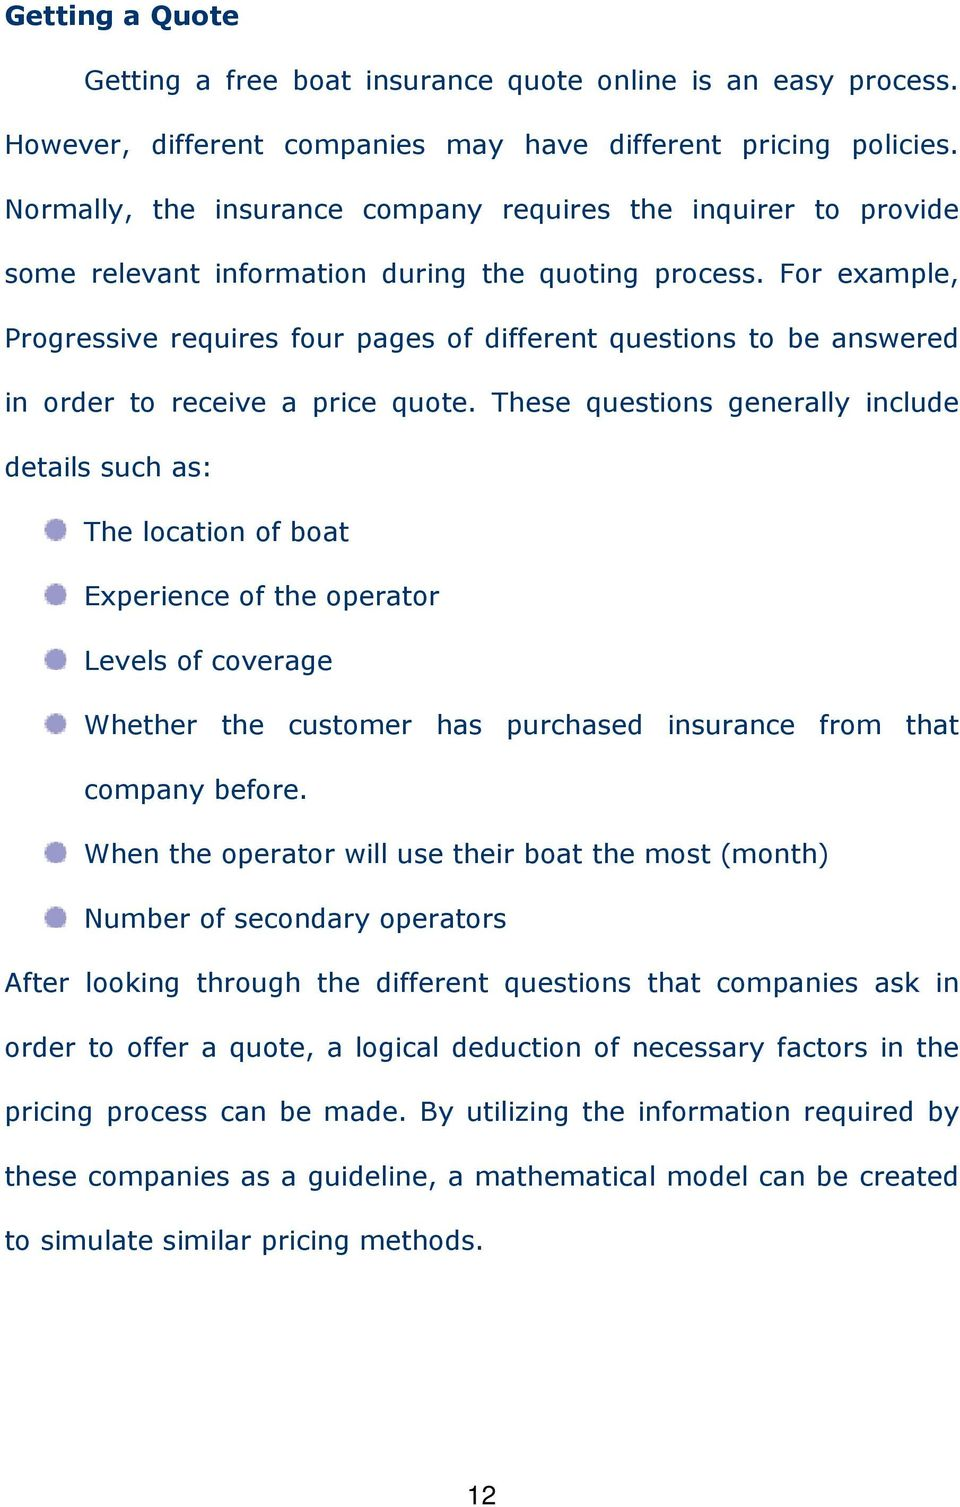 For example, Progressive requires four pages of different questions to be answered in order to receive a price quote.